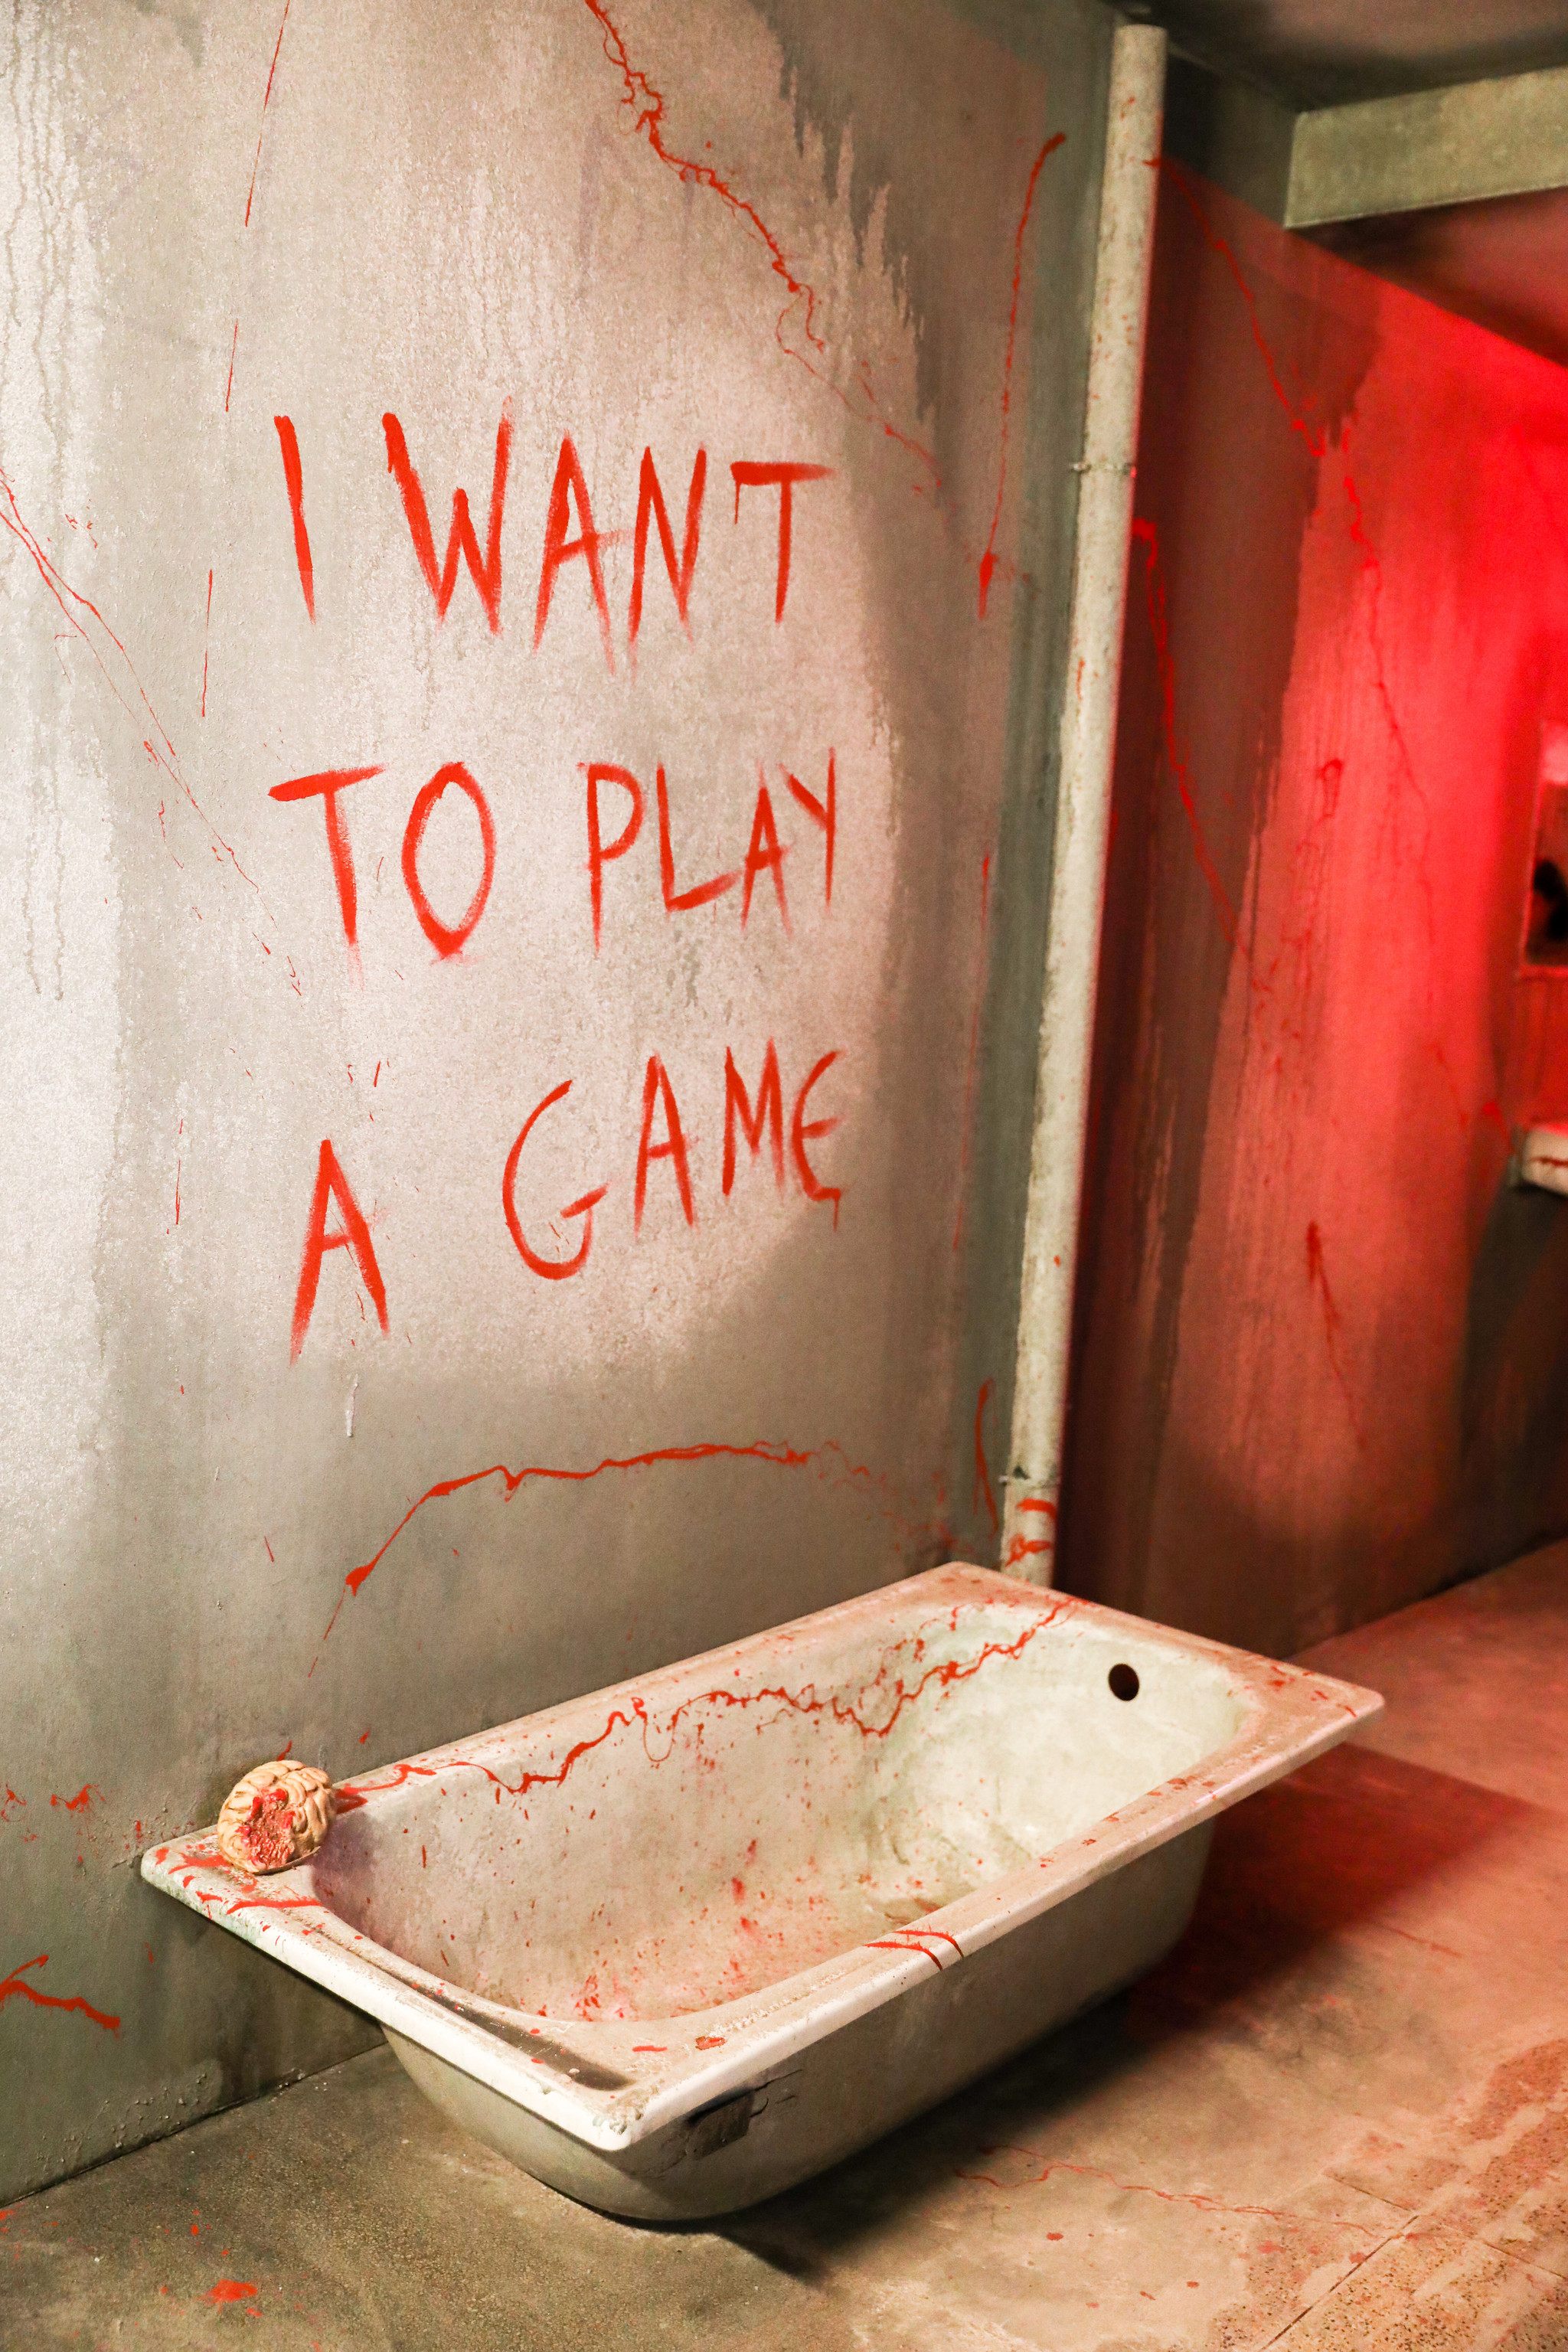 LM-Escape game Over-6.jpg